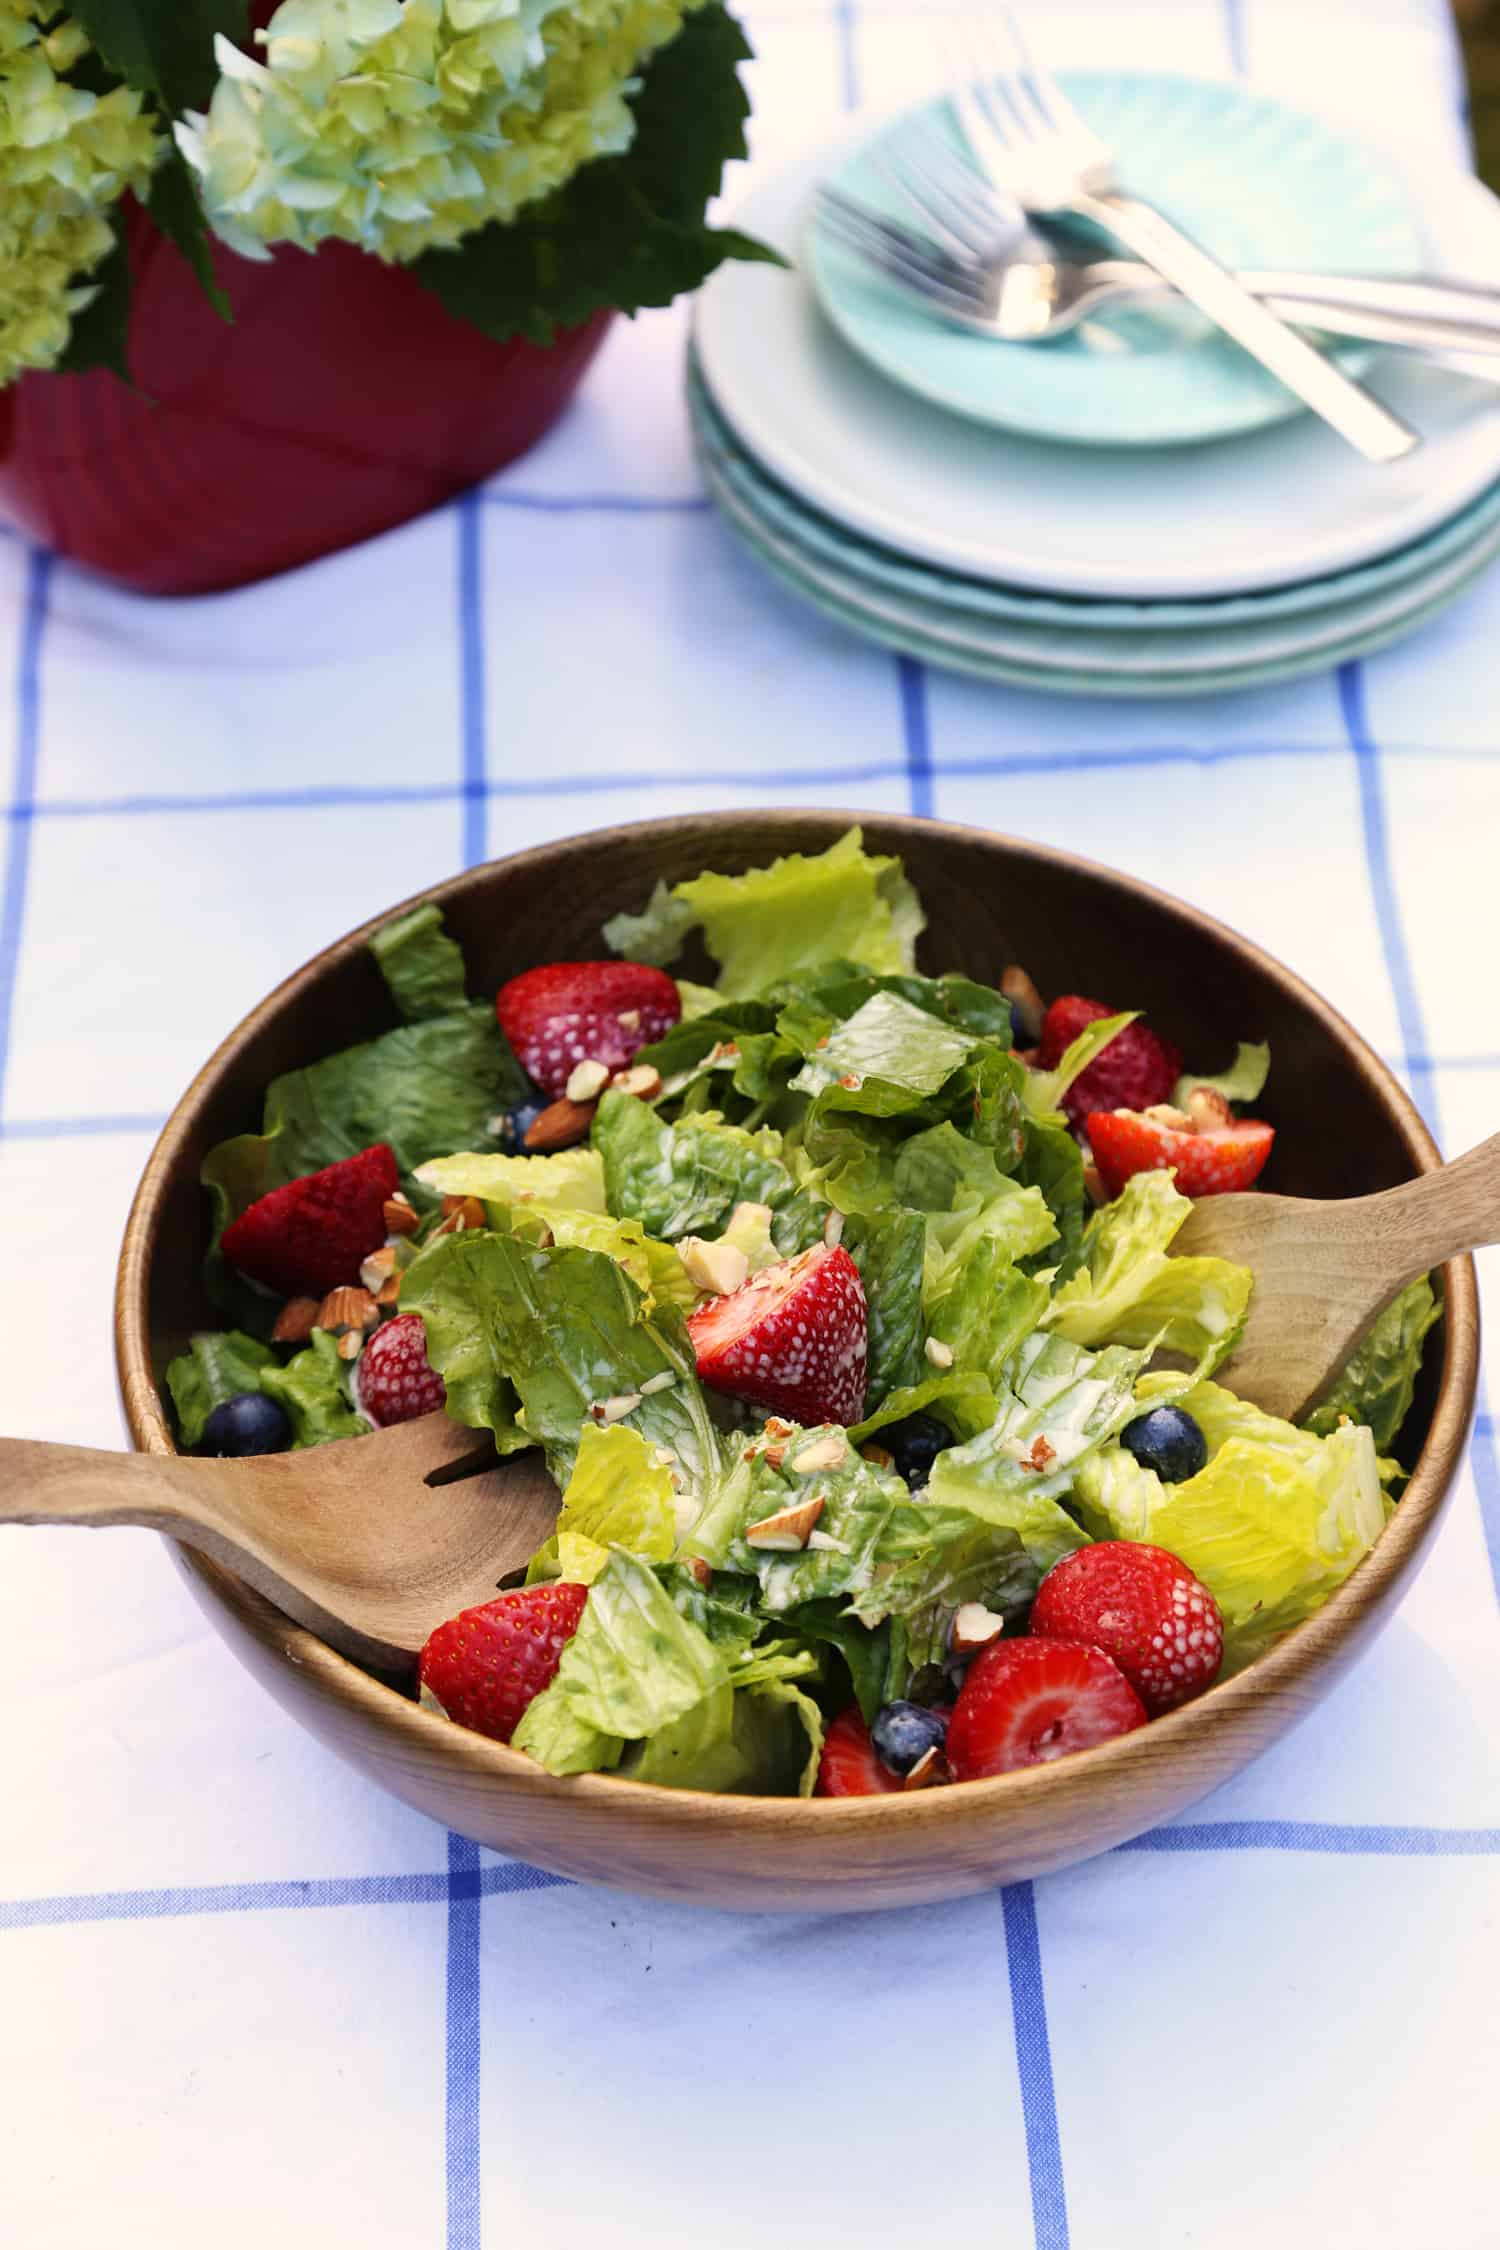 red white and blue salad for independance day or 4th of July